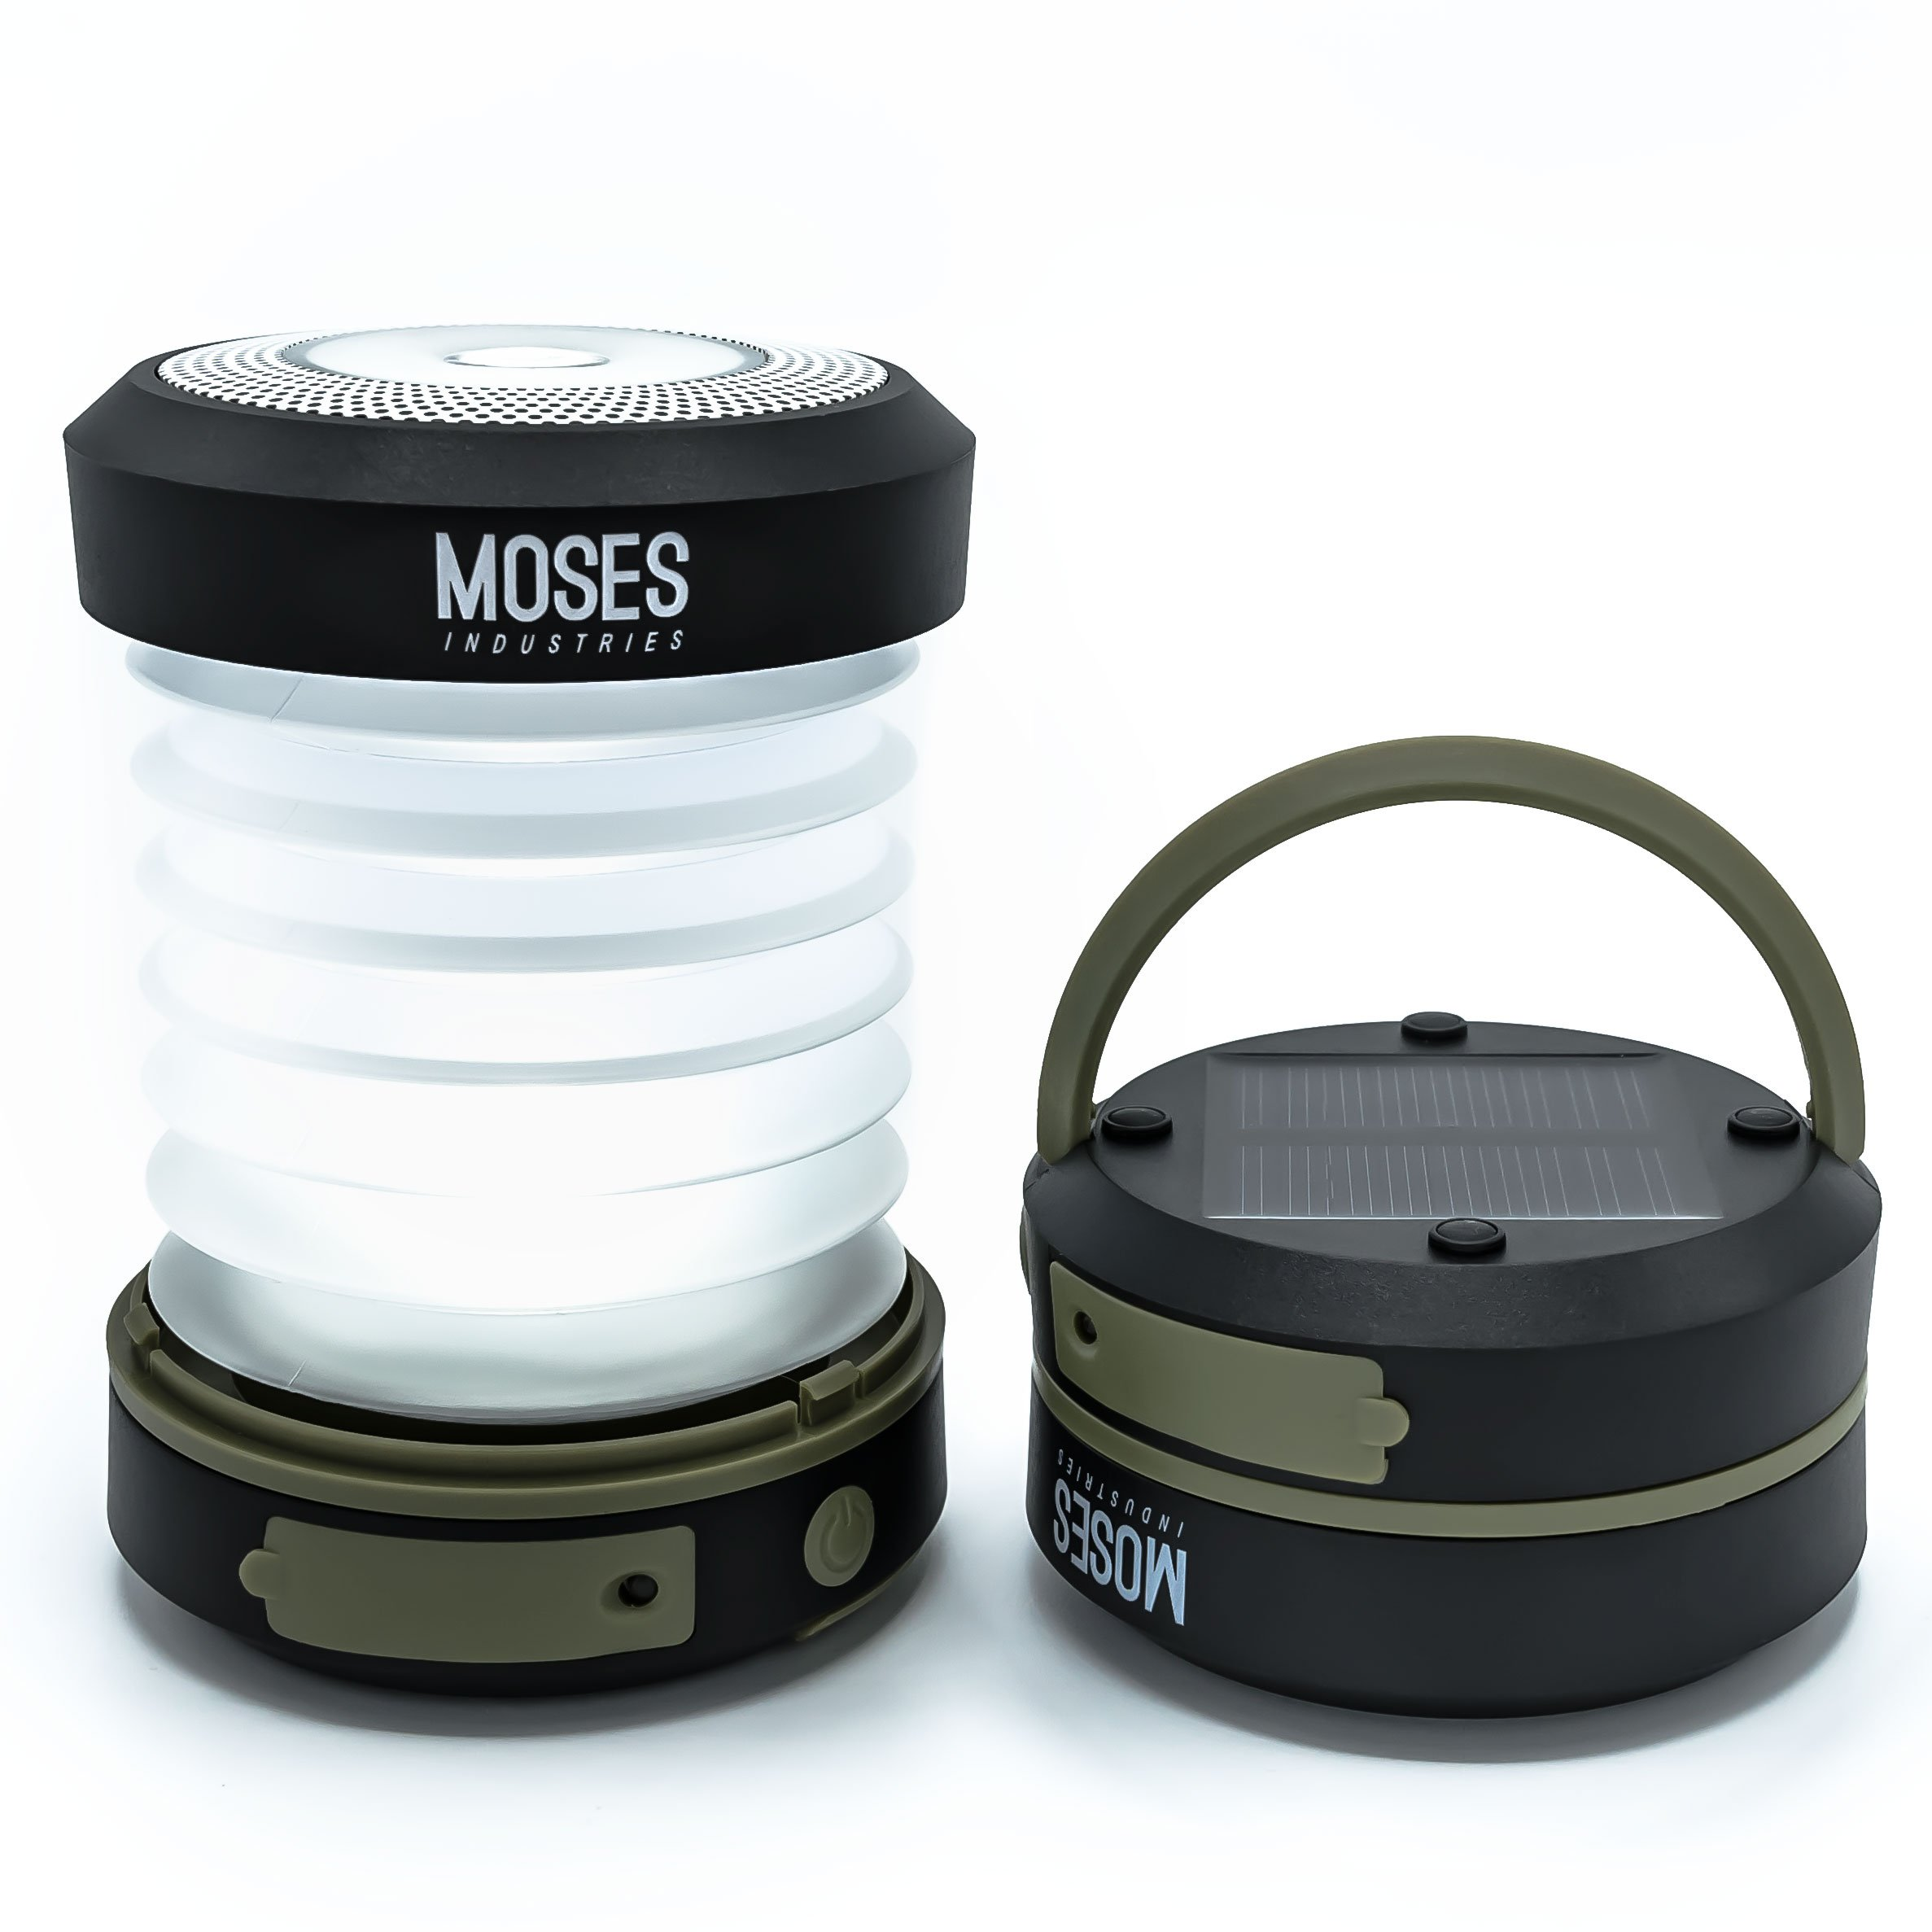 Solar Powered LED Camping Lantern: Rechargeable via Solar Panel or USB Cord - Emergency Power Bank and Flashlight - Best for Travel and Outdoor Adventures